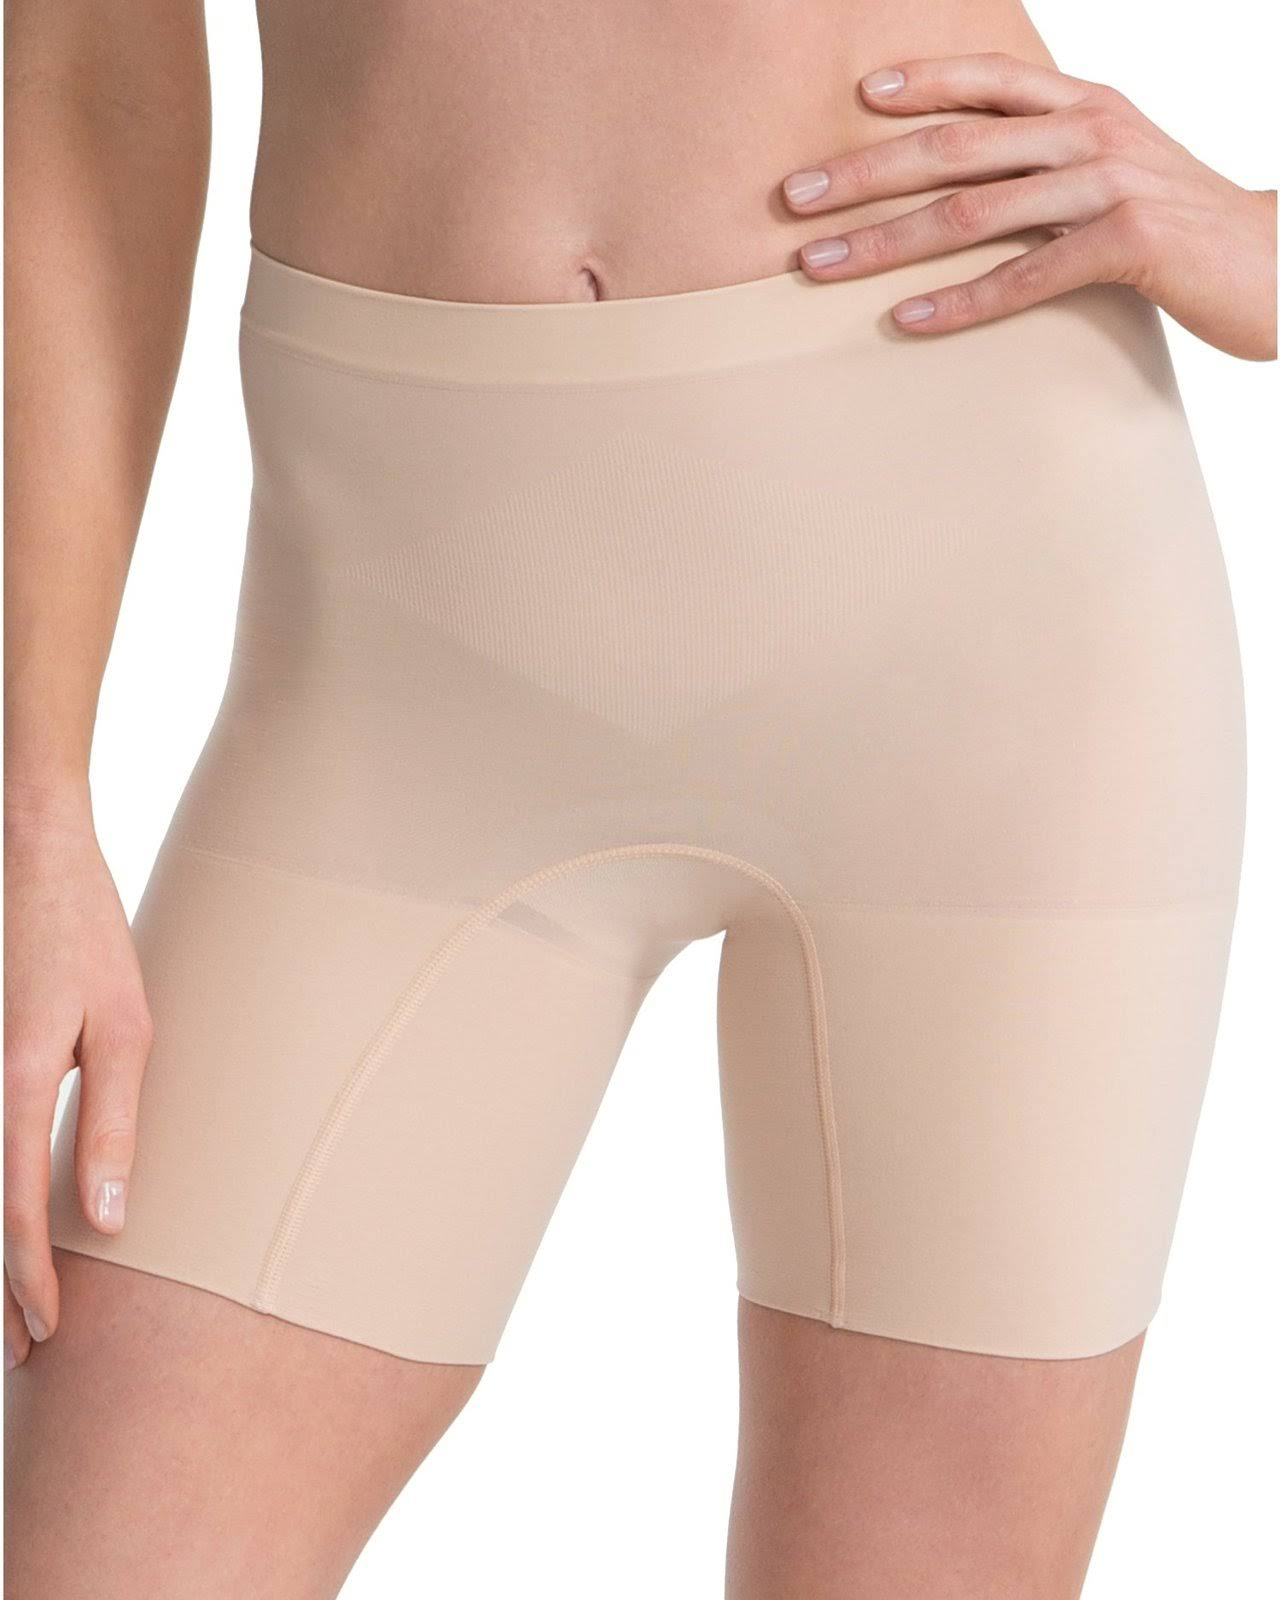 Spanx Women's Power Shorts - Soft Nude, 3X Plus, Medium